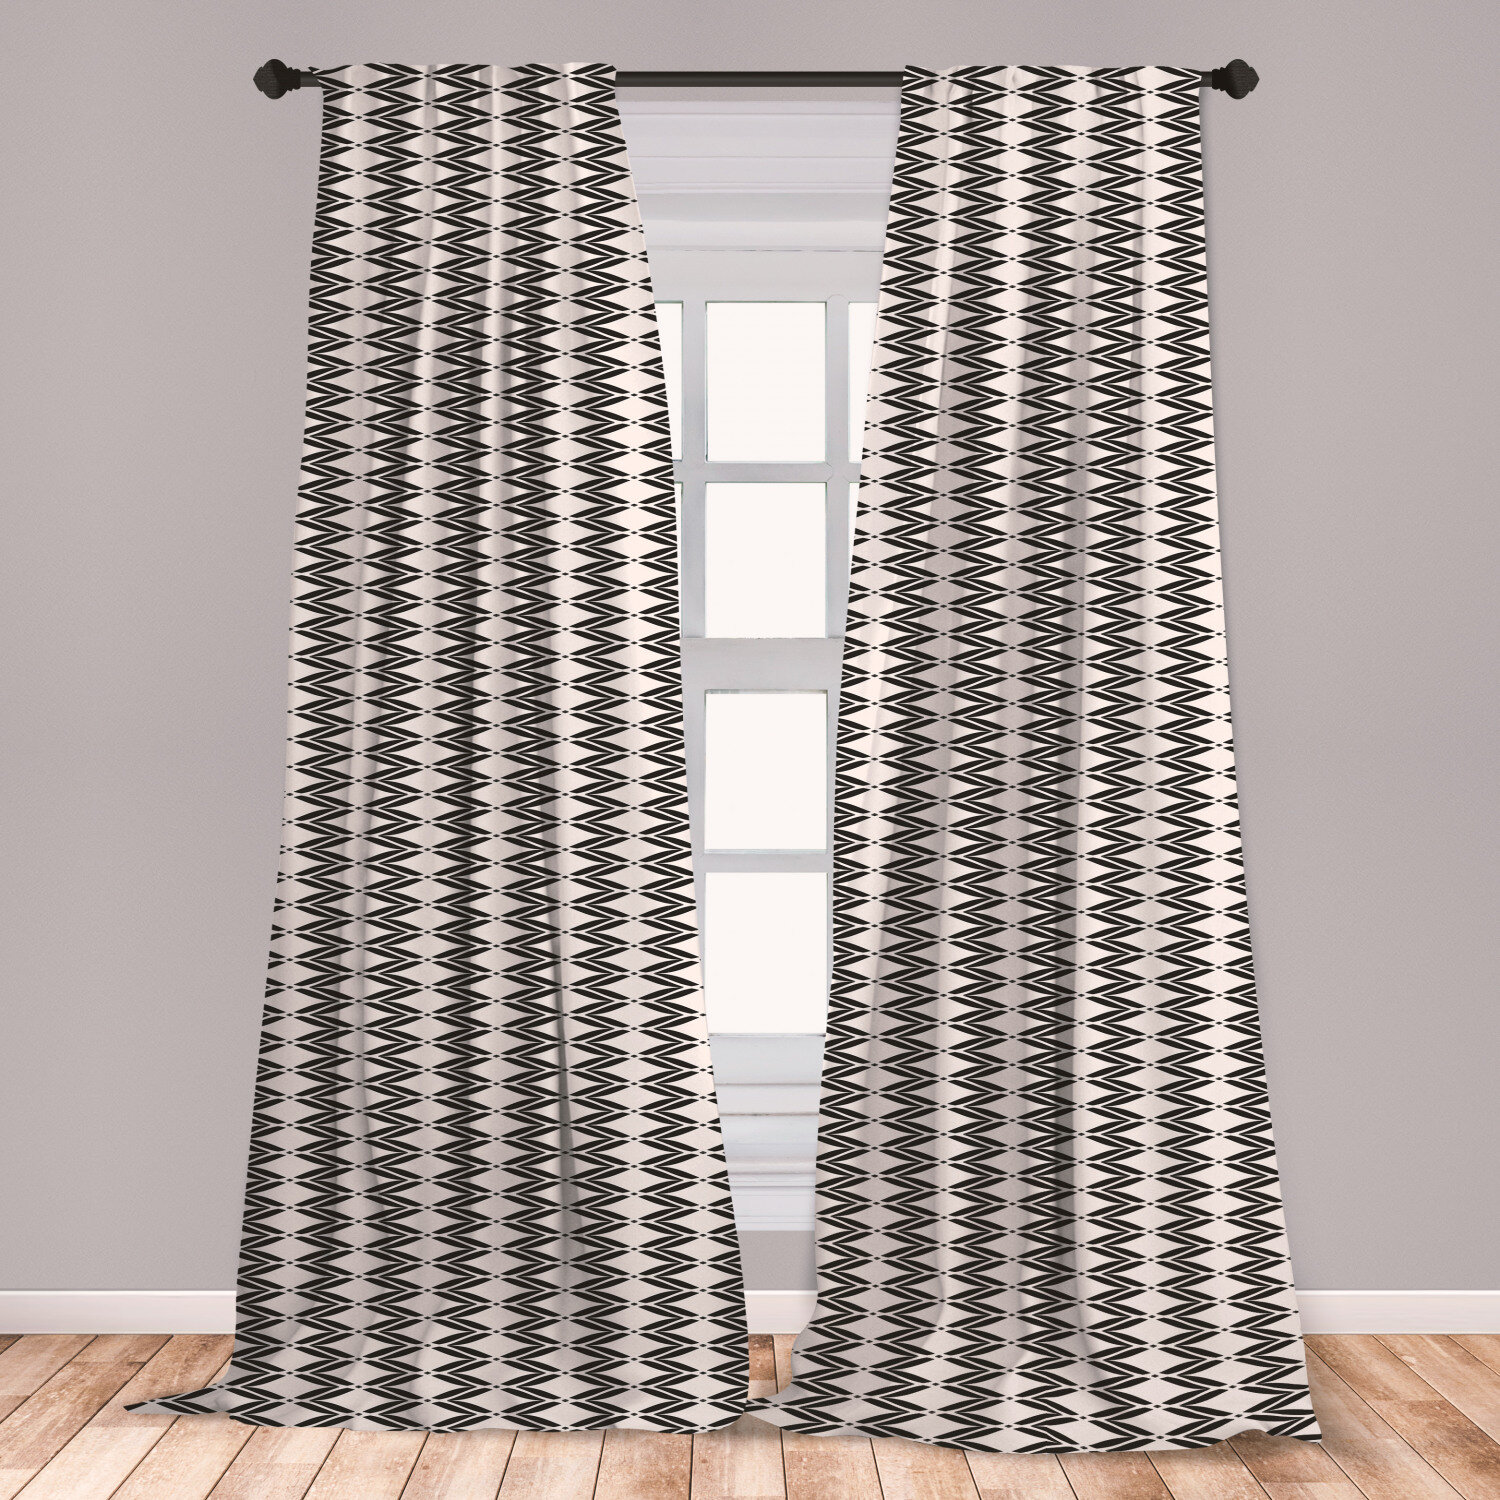 East Urban Home Art Deco Chevron Room Darkening Rod Pocket Curtain Panels Wayfair